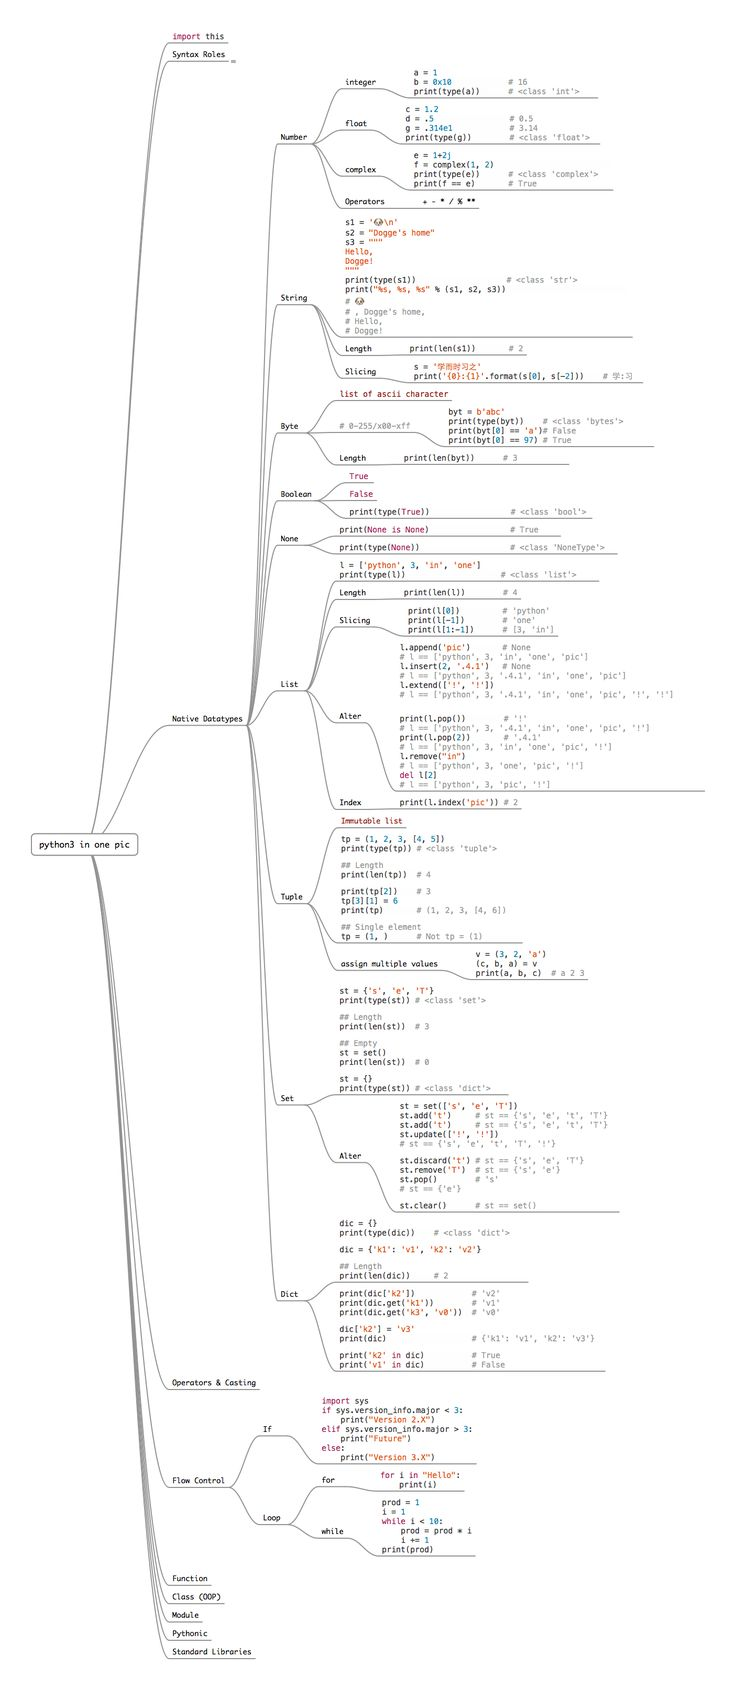 17 Best images about Python Programming on Pinterest